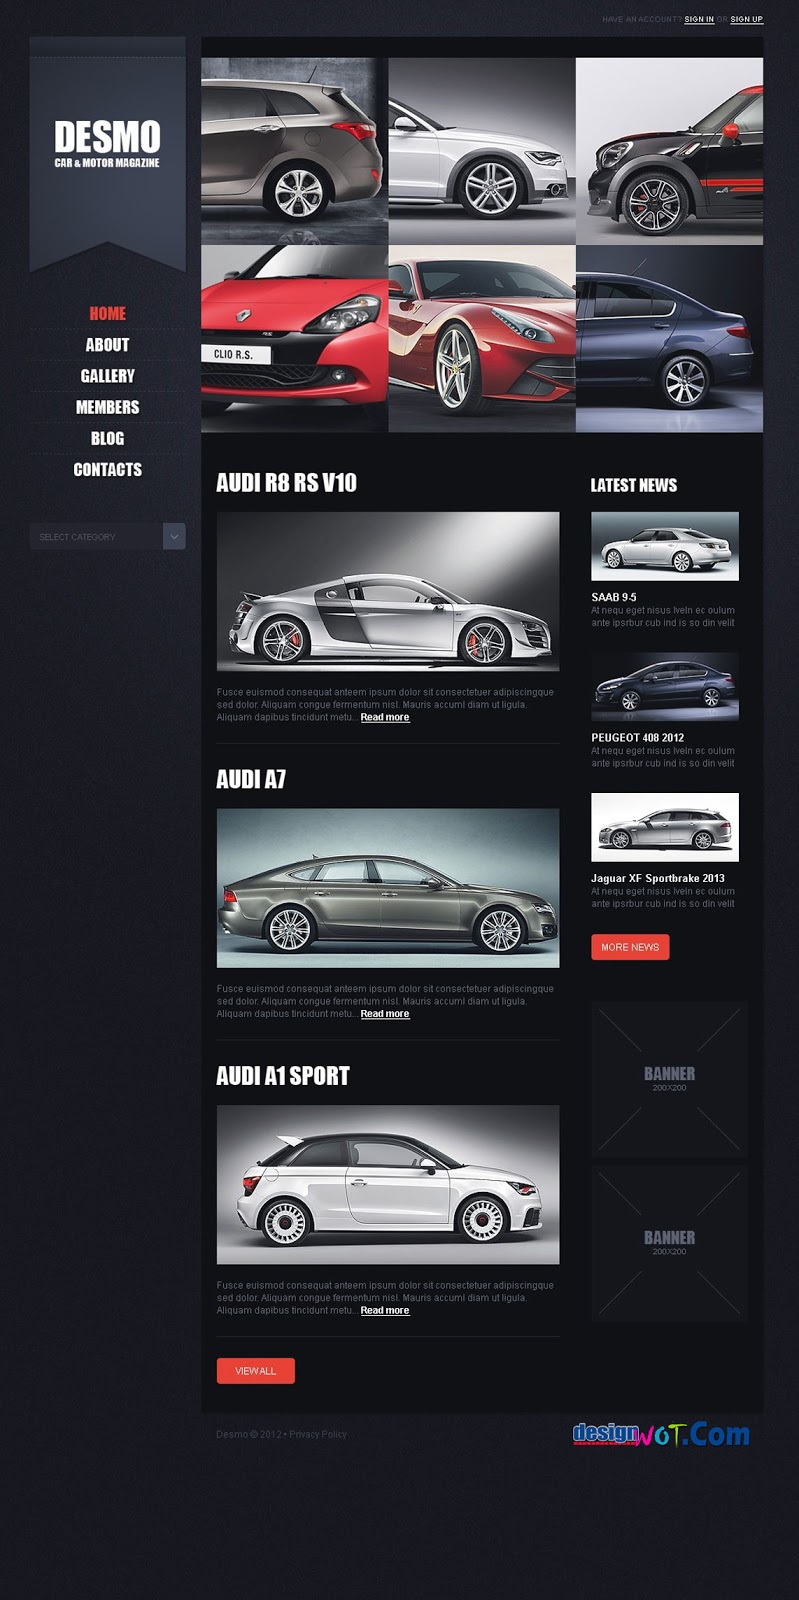 DESMO Car Premium Responsive Wordpres Theme